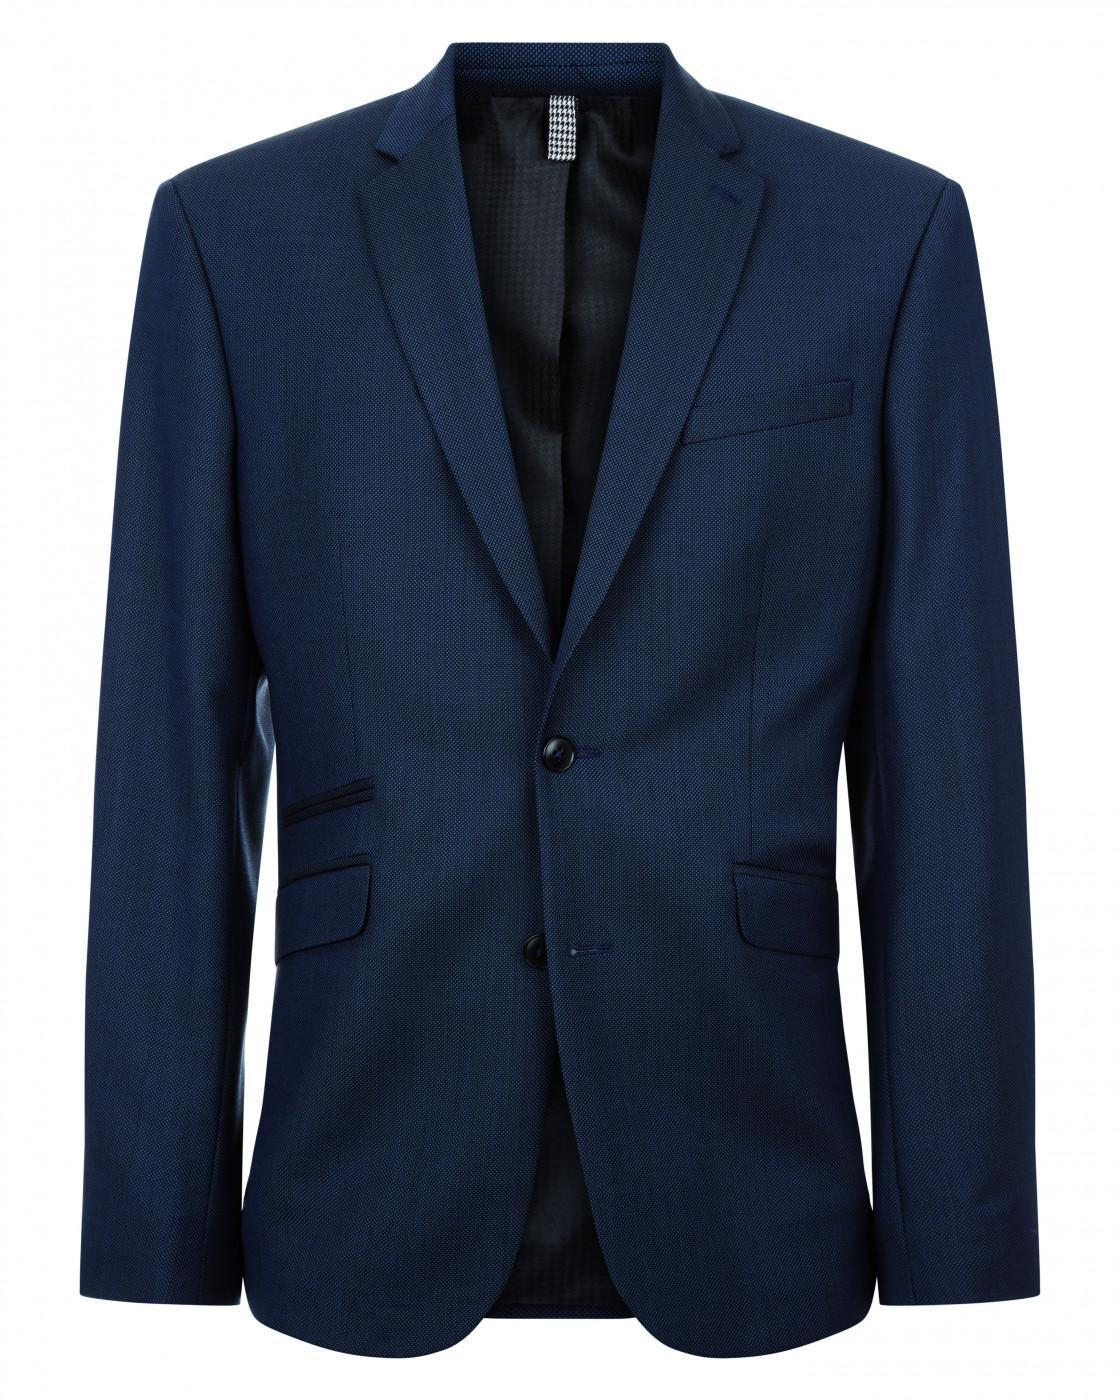 Tailored Birdseye Suit Jacket By Austin Reed Thread Com